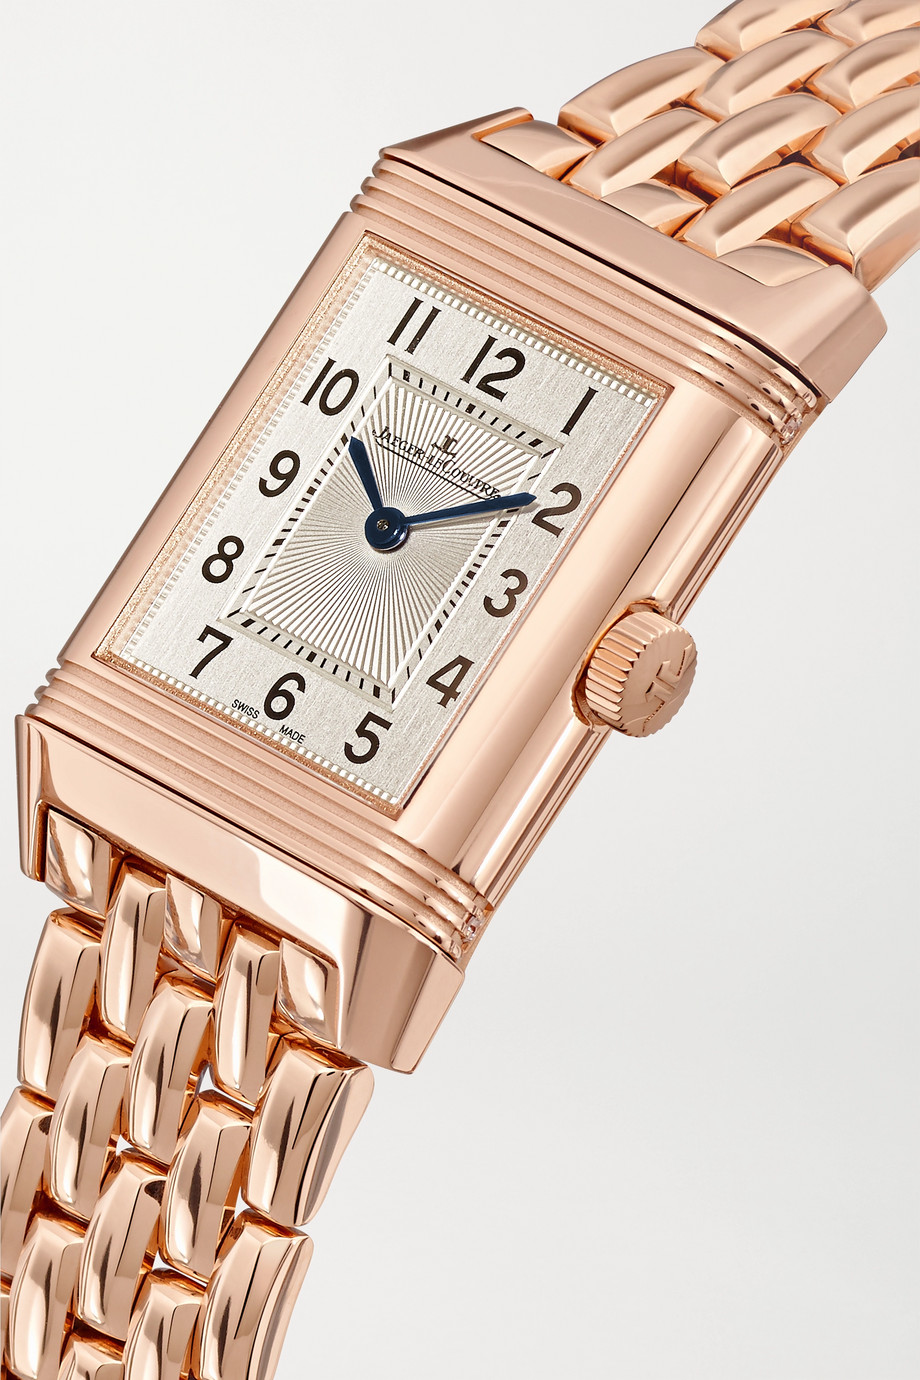 Jaeger-LeCoultre Reverso Classic Duetto small hand-wound 21mm rose gold and diamond watch